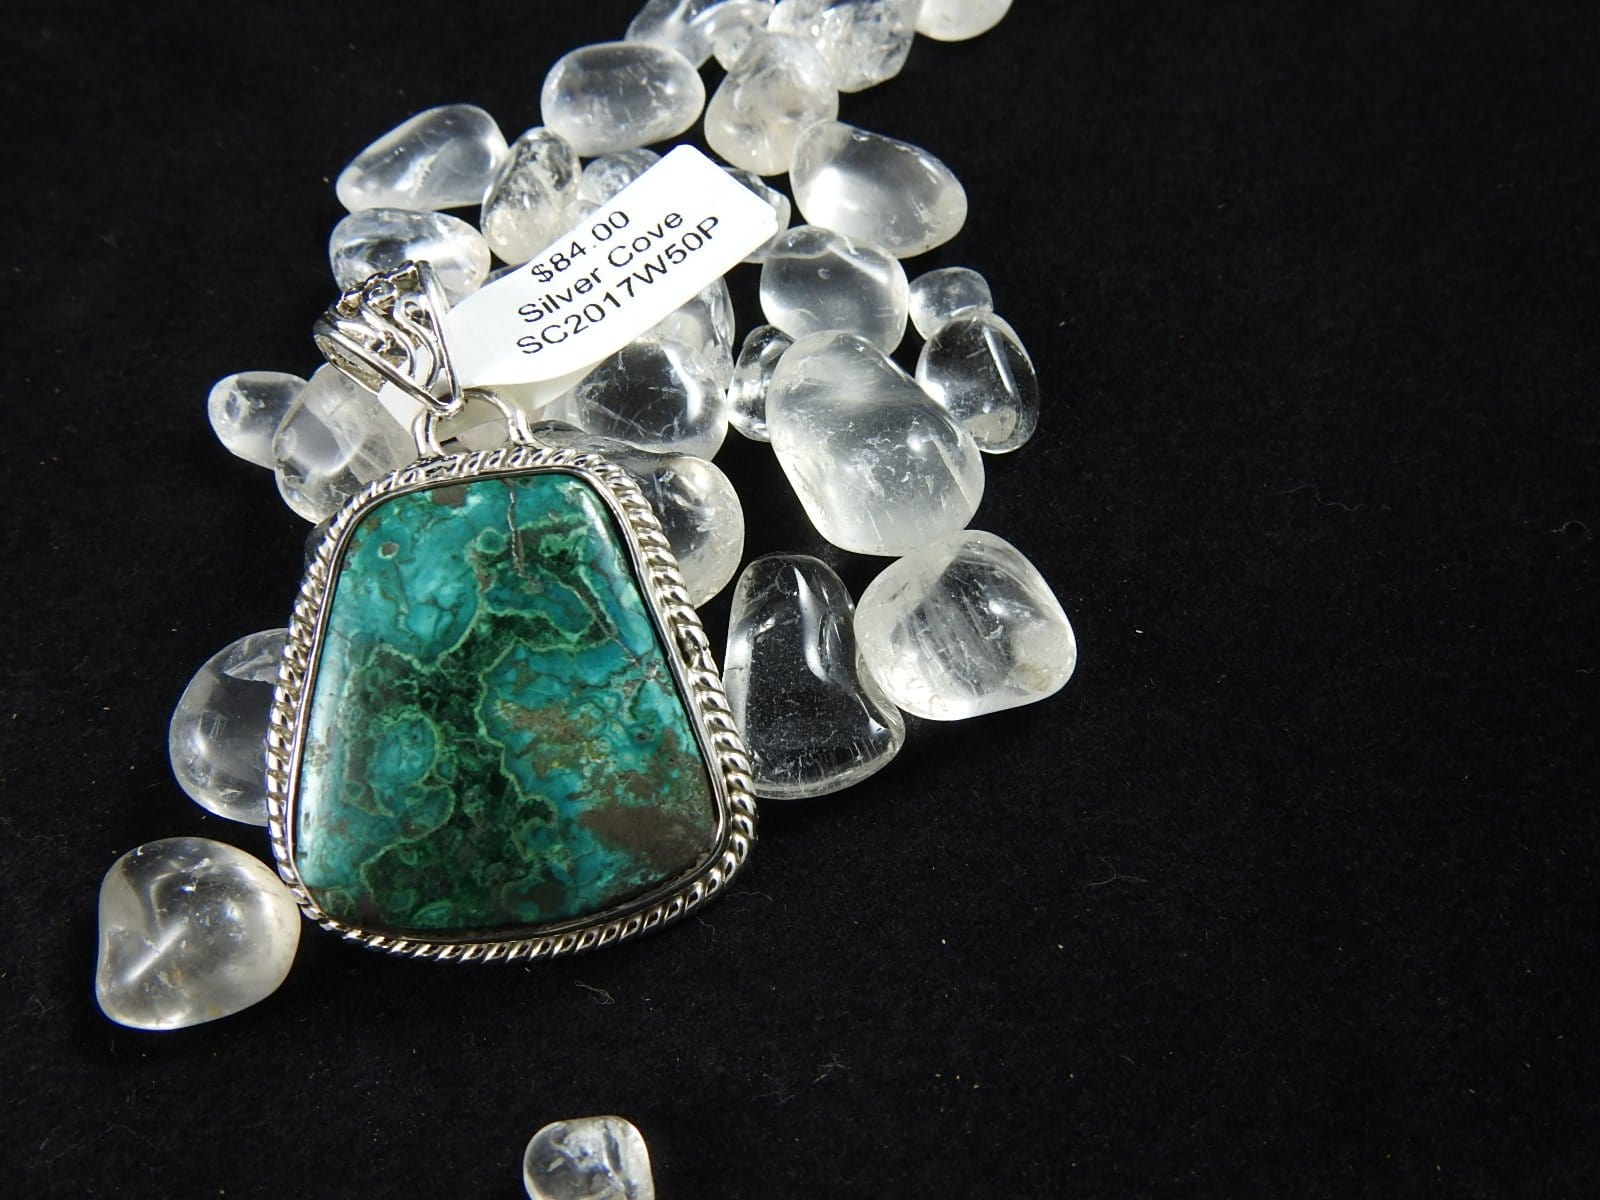 Chrysocolla pendant set in Sterling Silver